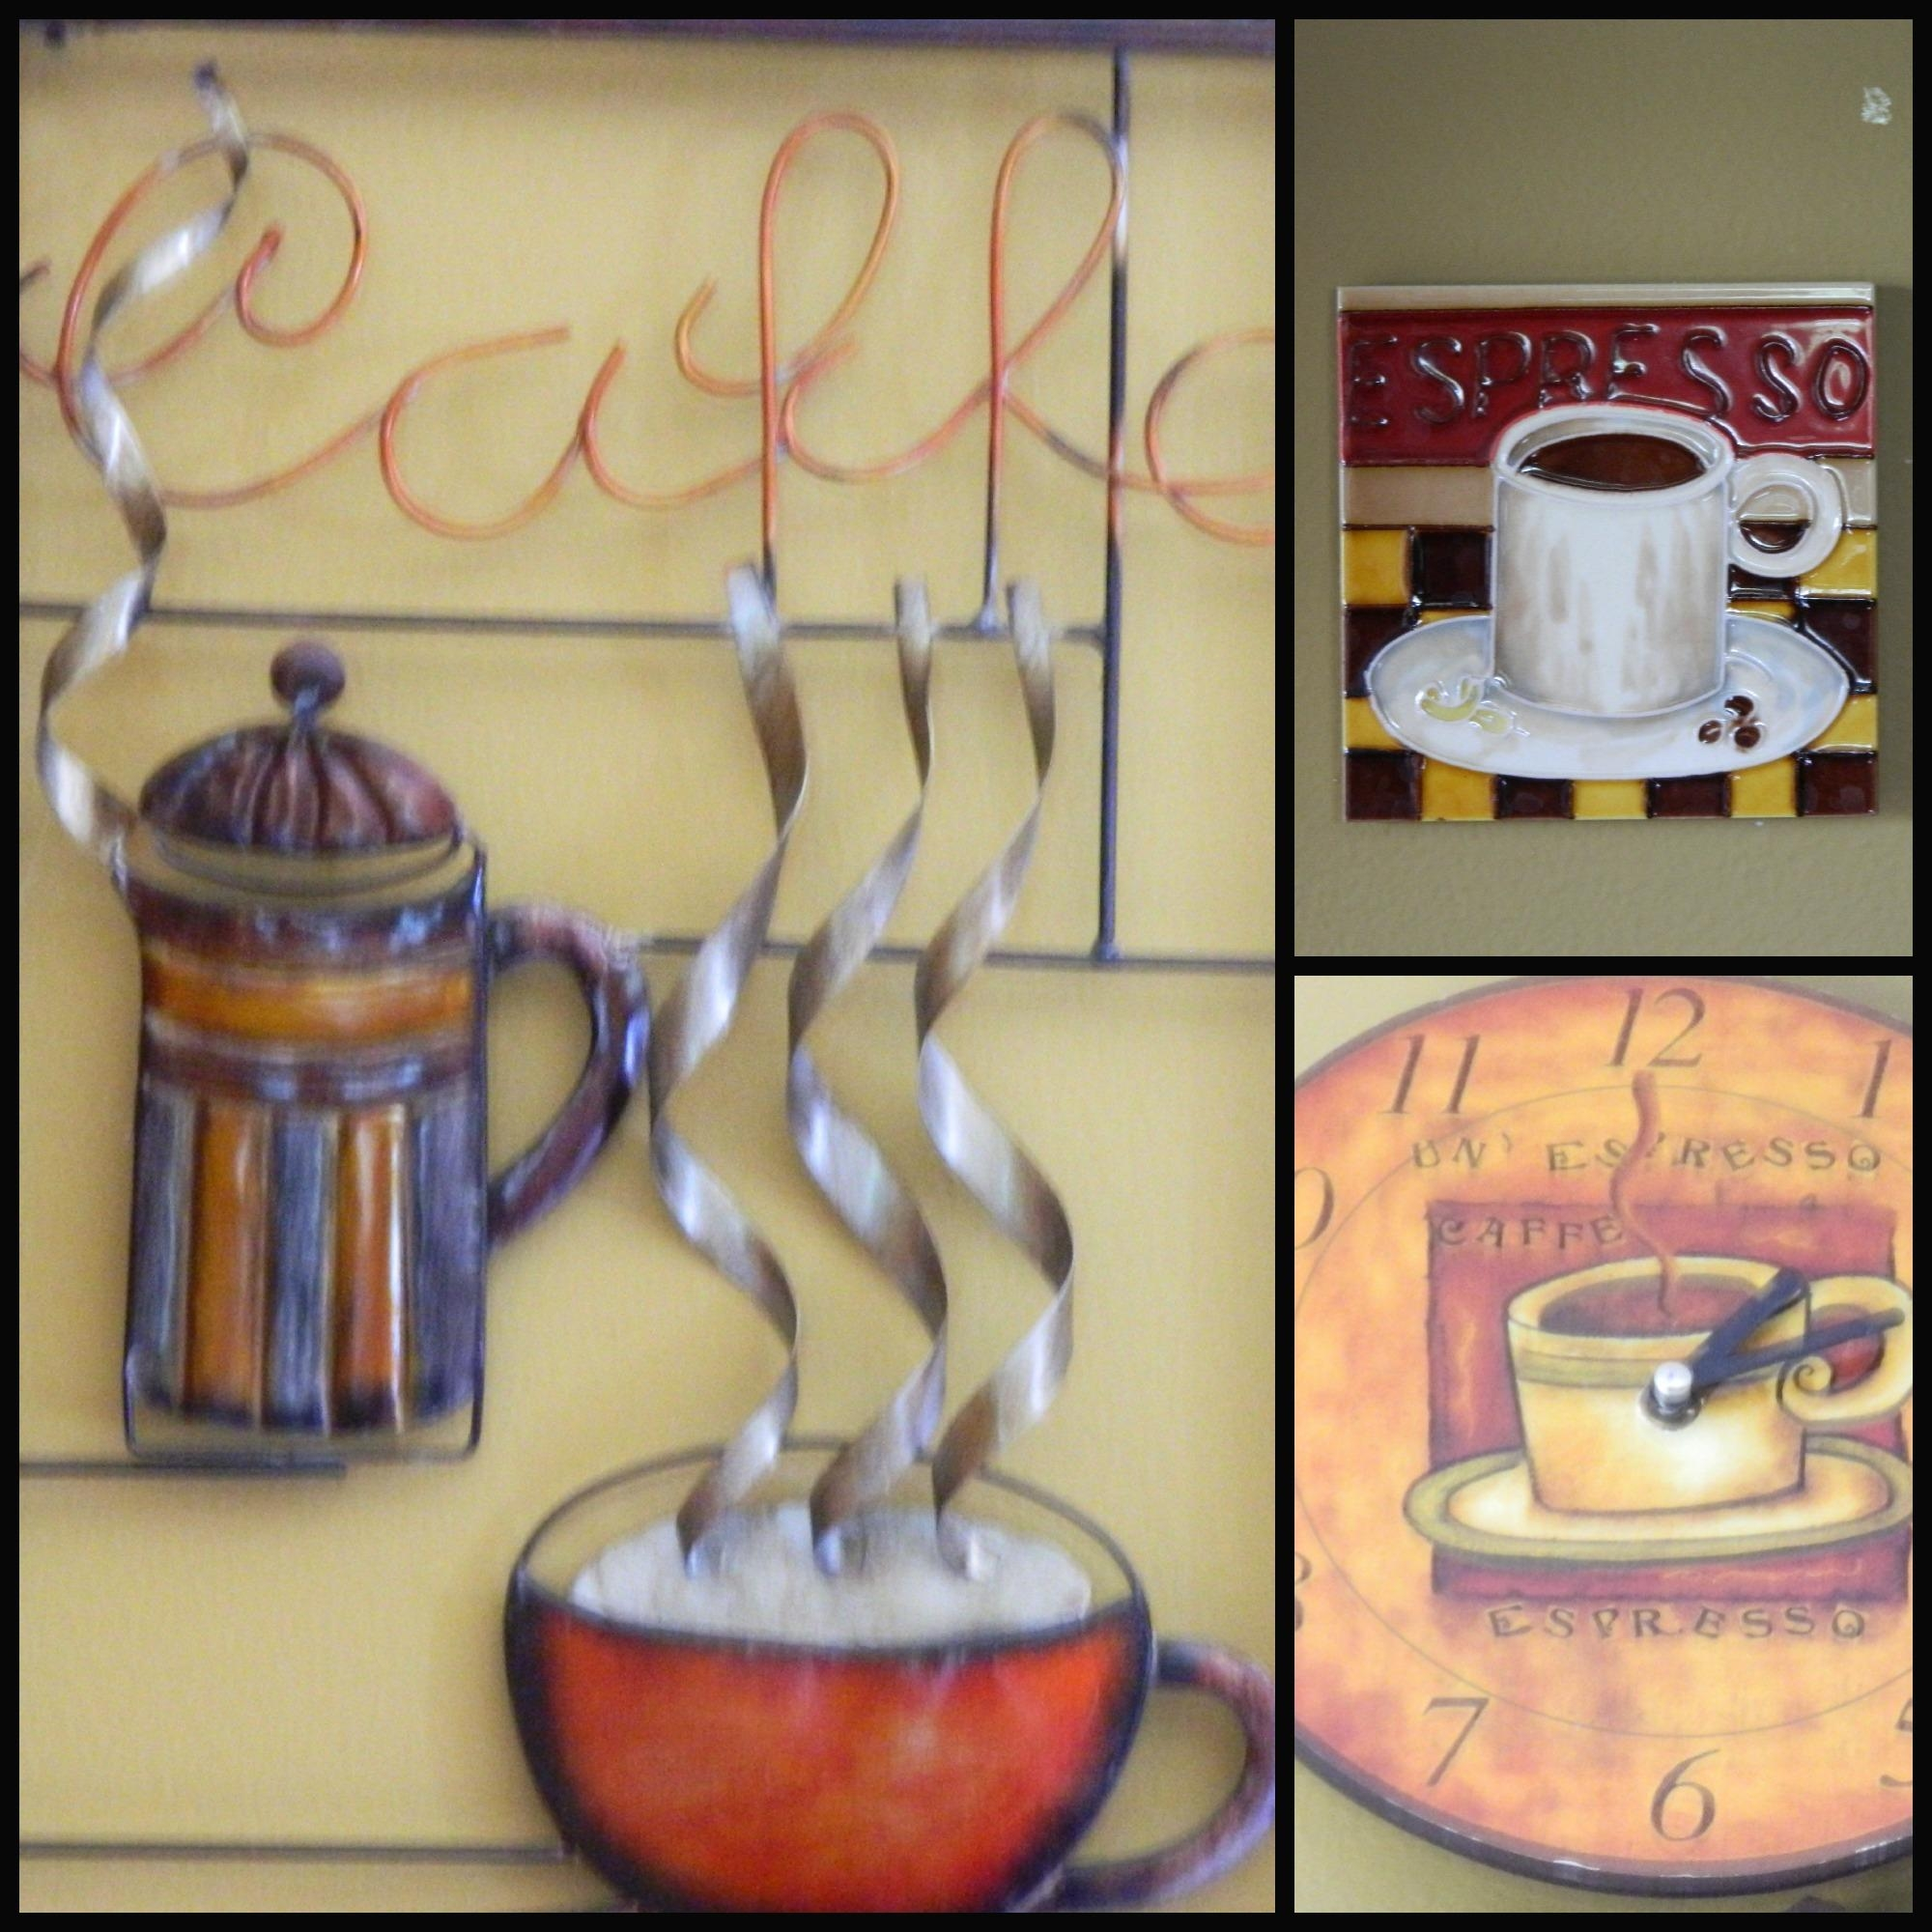 20 Best Collection Of Cafe Latte Kitchen Wall Art Wall Art Ideas Coffee  Themed Kitchen Decor